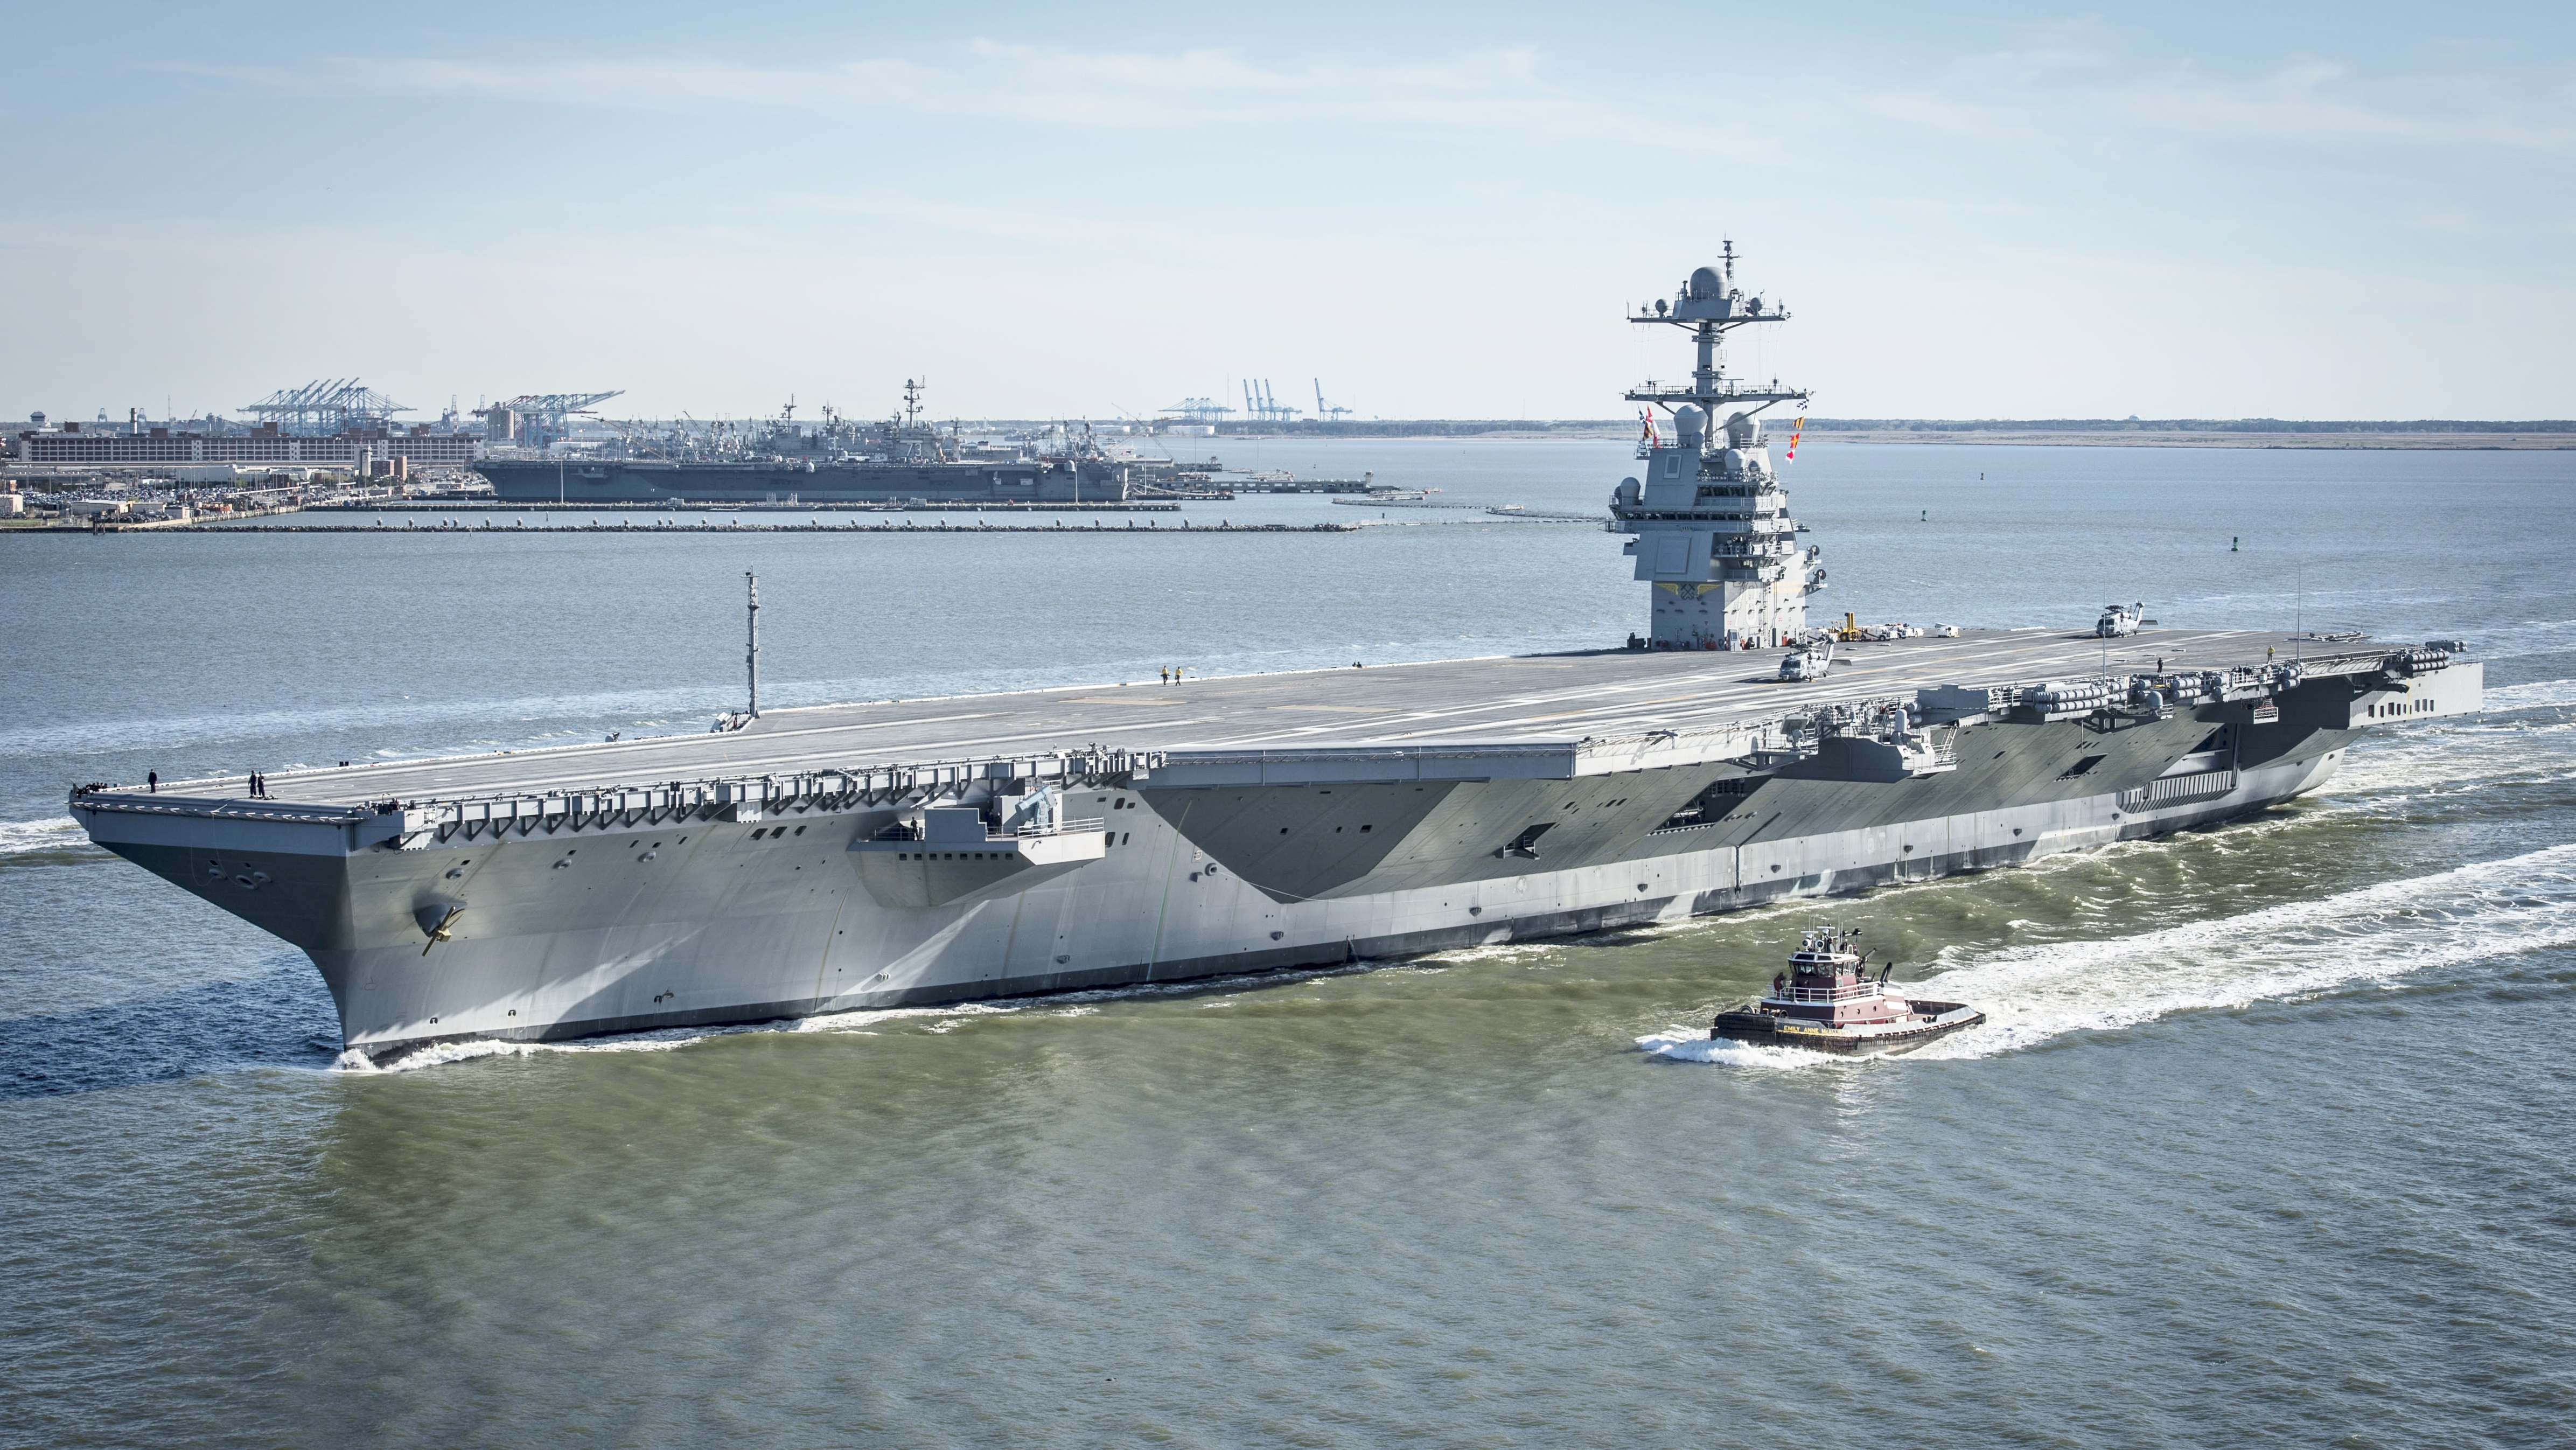 Uss george washington (1990) — global wiki. wargaming.net